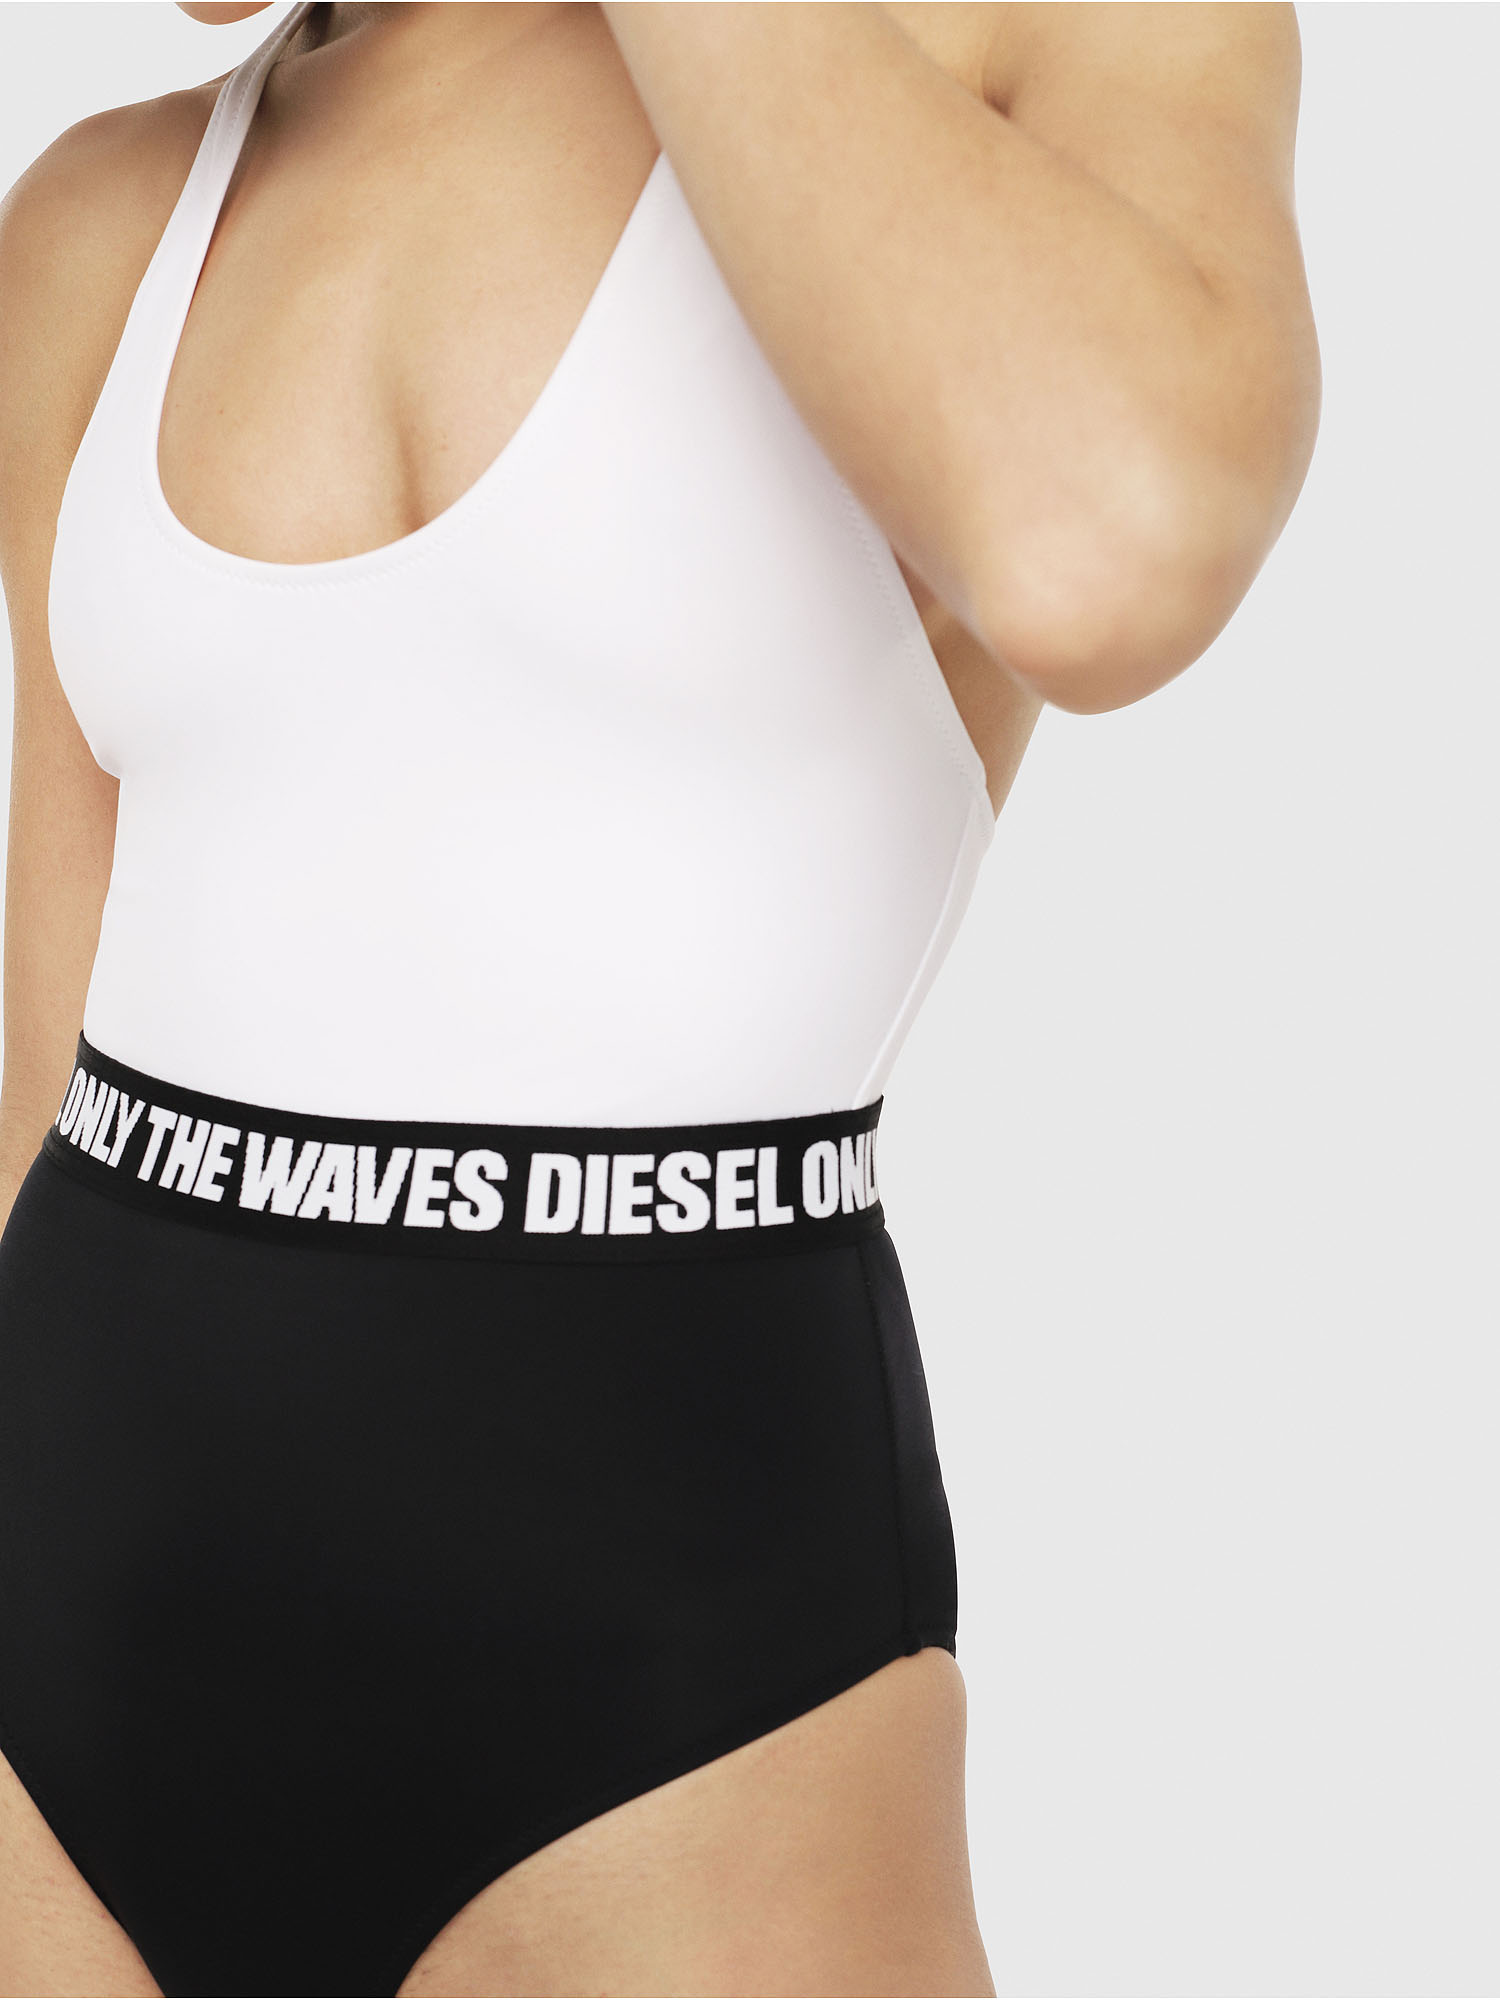 Diesel - BFSW-HOLY,  - Swimsuits - Image 4